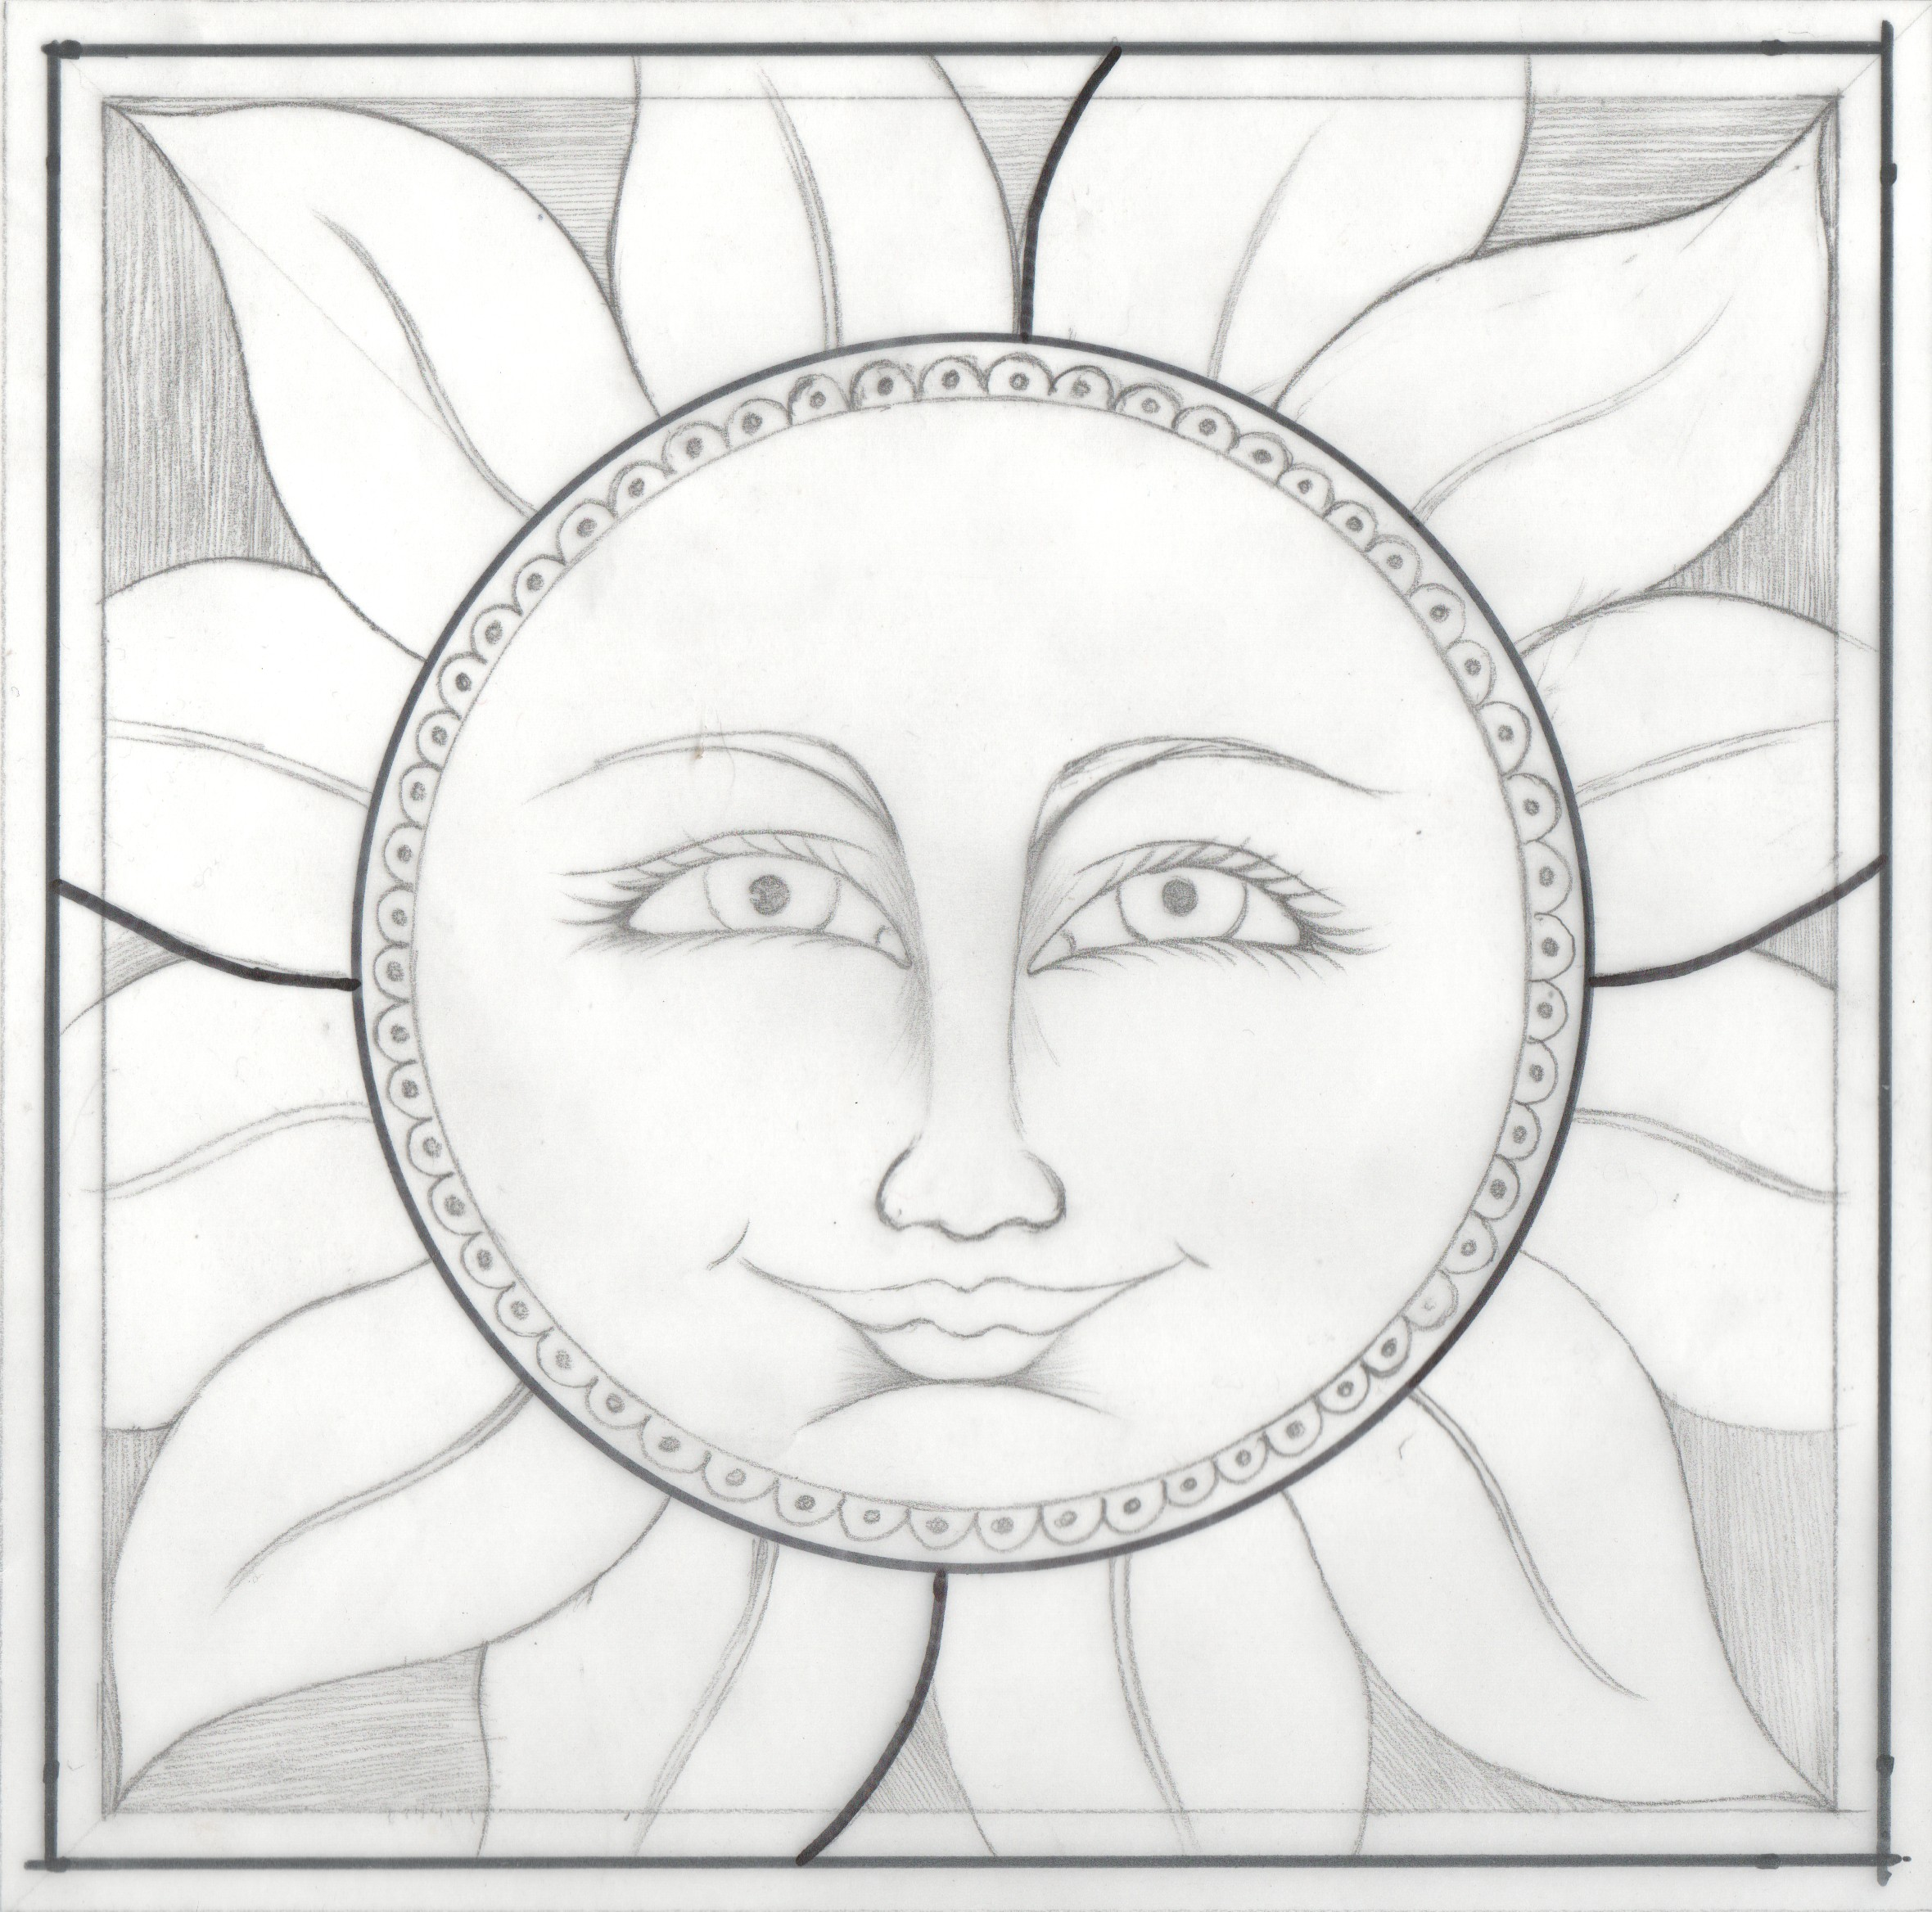 2360x2336 Free Stained Glass Pattern For Lead Or Copper Foil, Painted